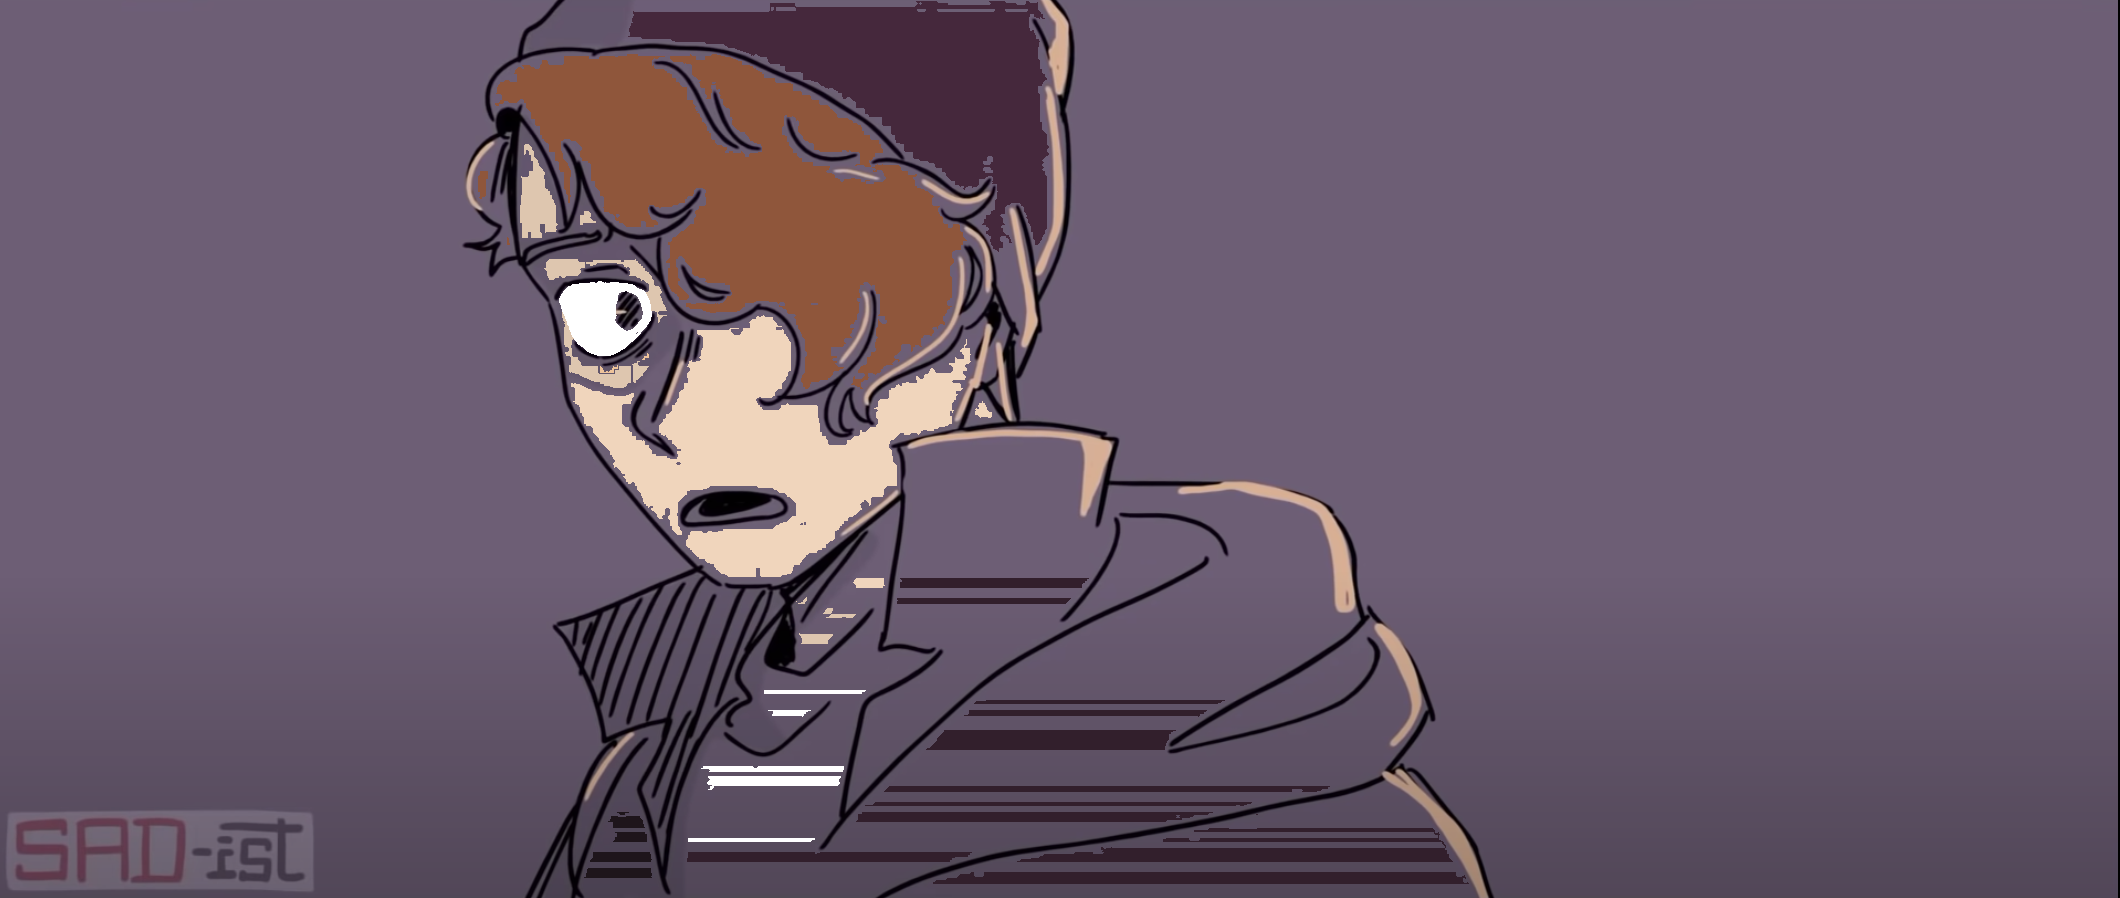 wilby (art credit the SAD-ist) )(coloring credit to me)